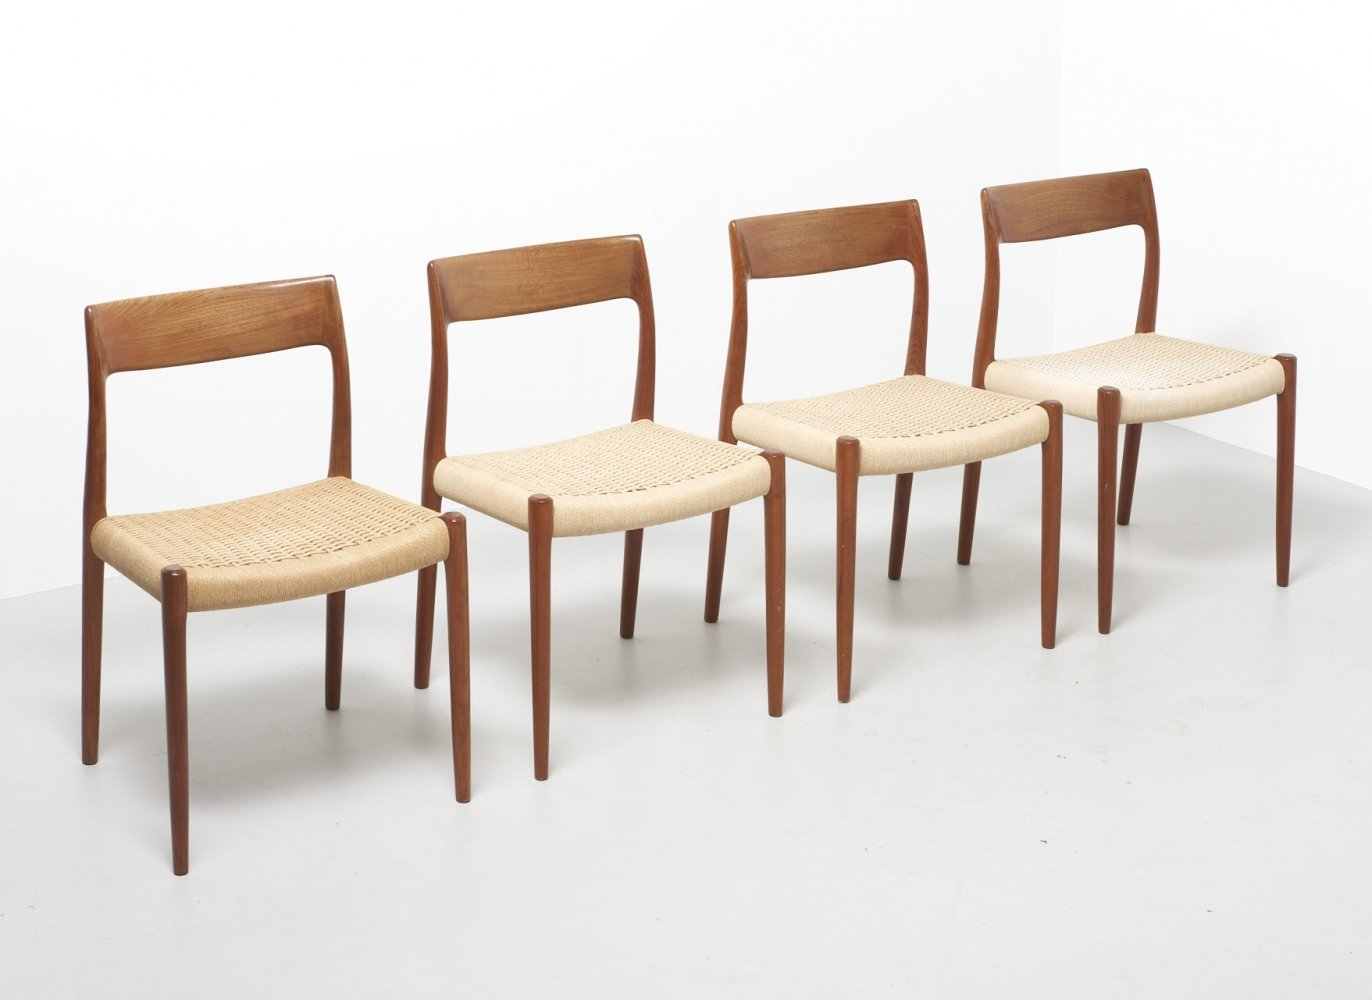 4 x model 77 papercord chairs by Niels O. Møller